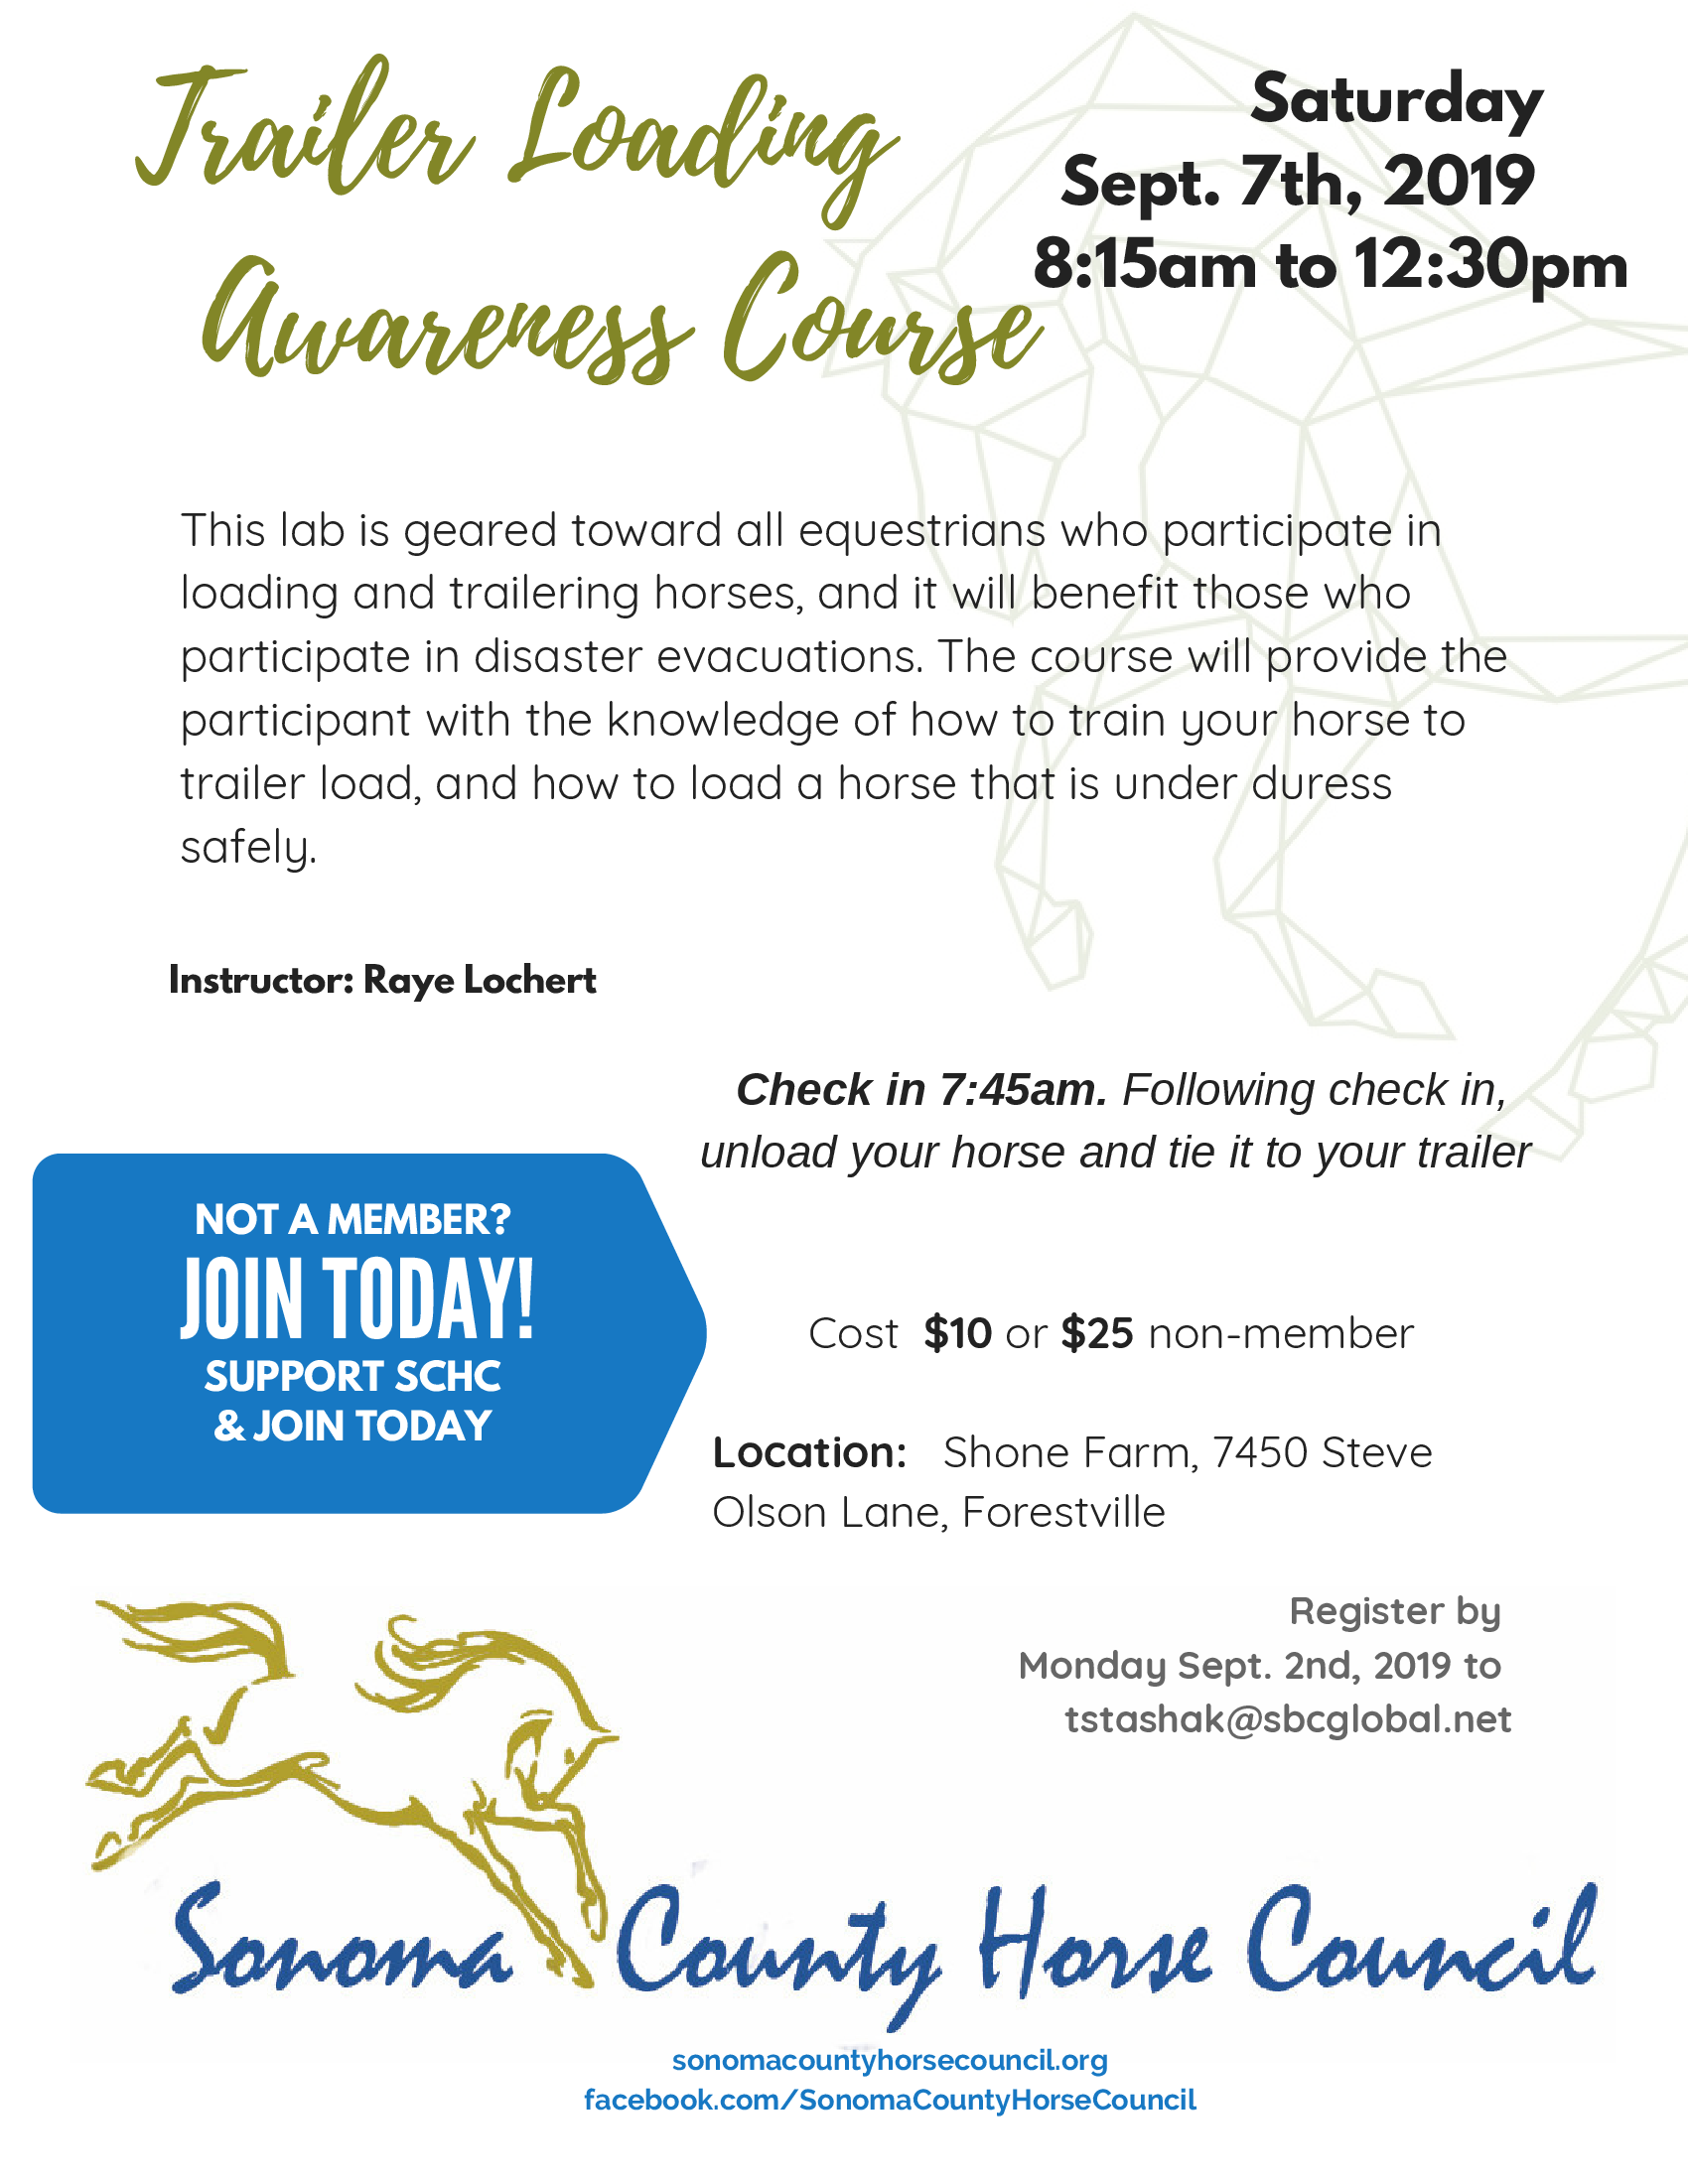 Sonoma County Horse Council Trailer Loading Awareness Course